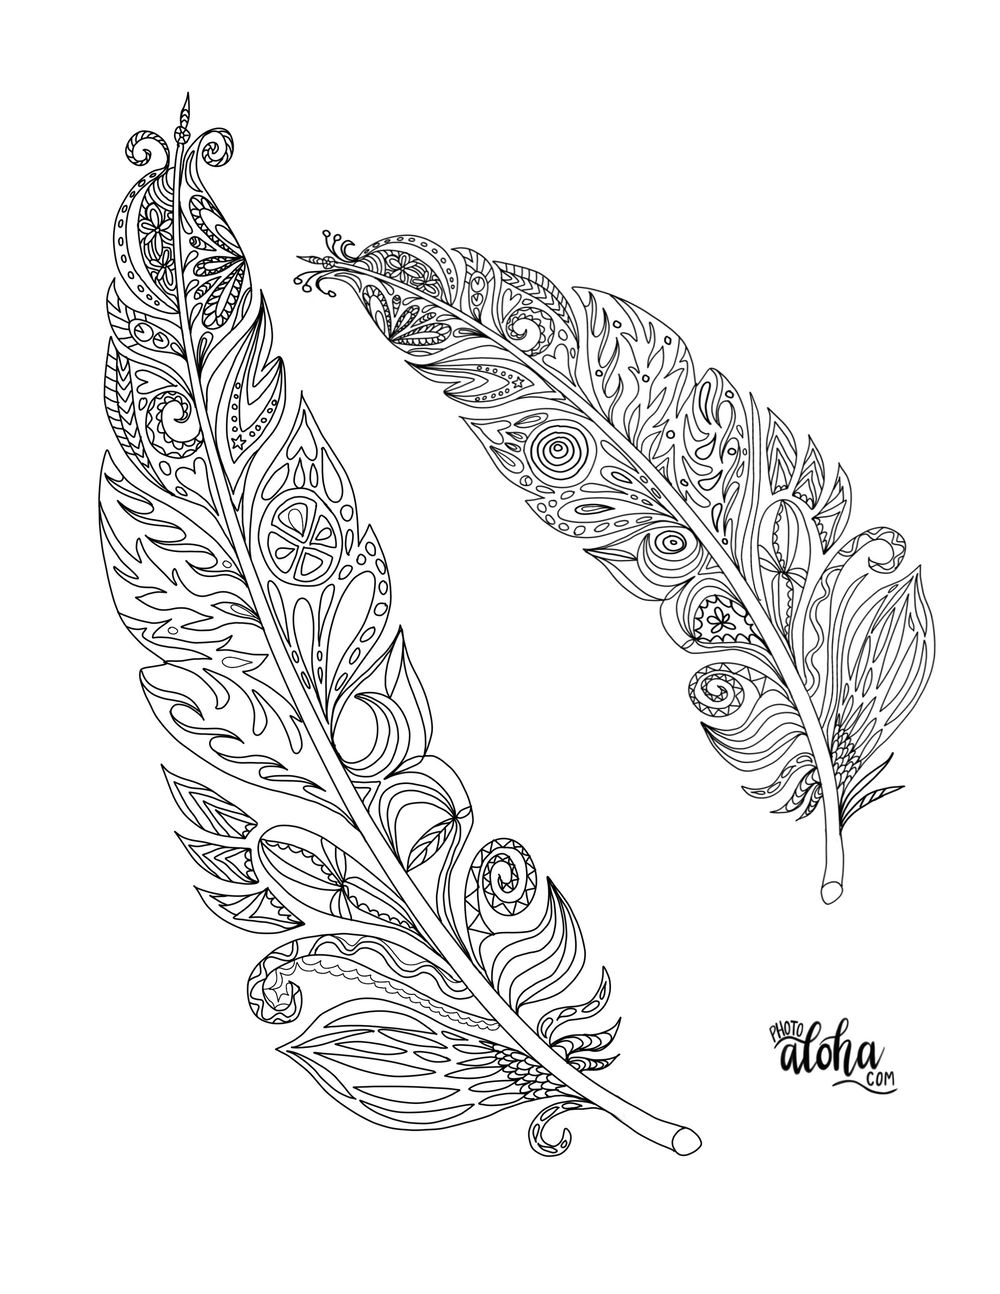 Feathers for coloring book challenge - image 1 - student project